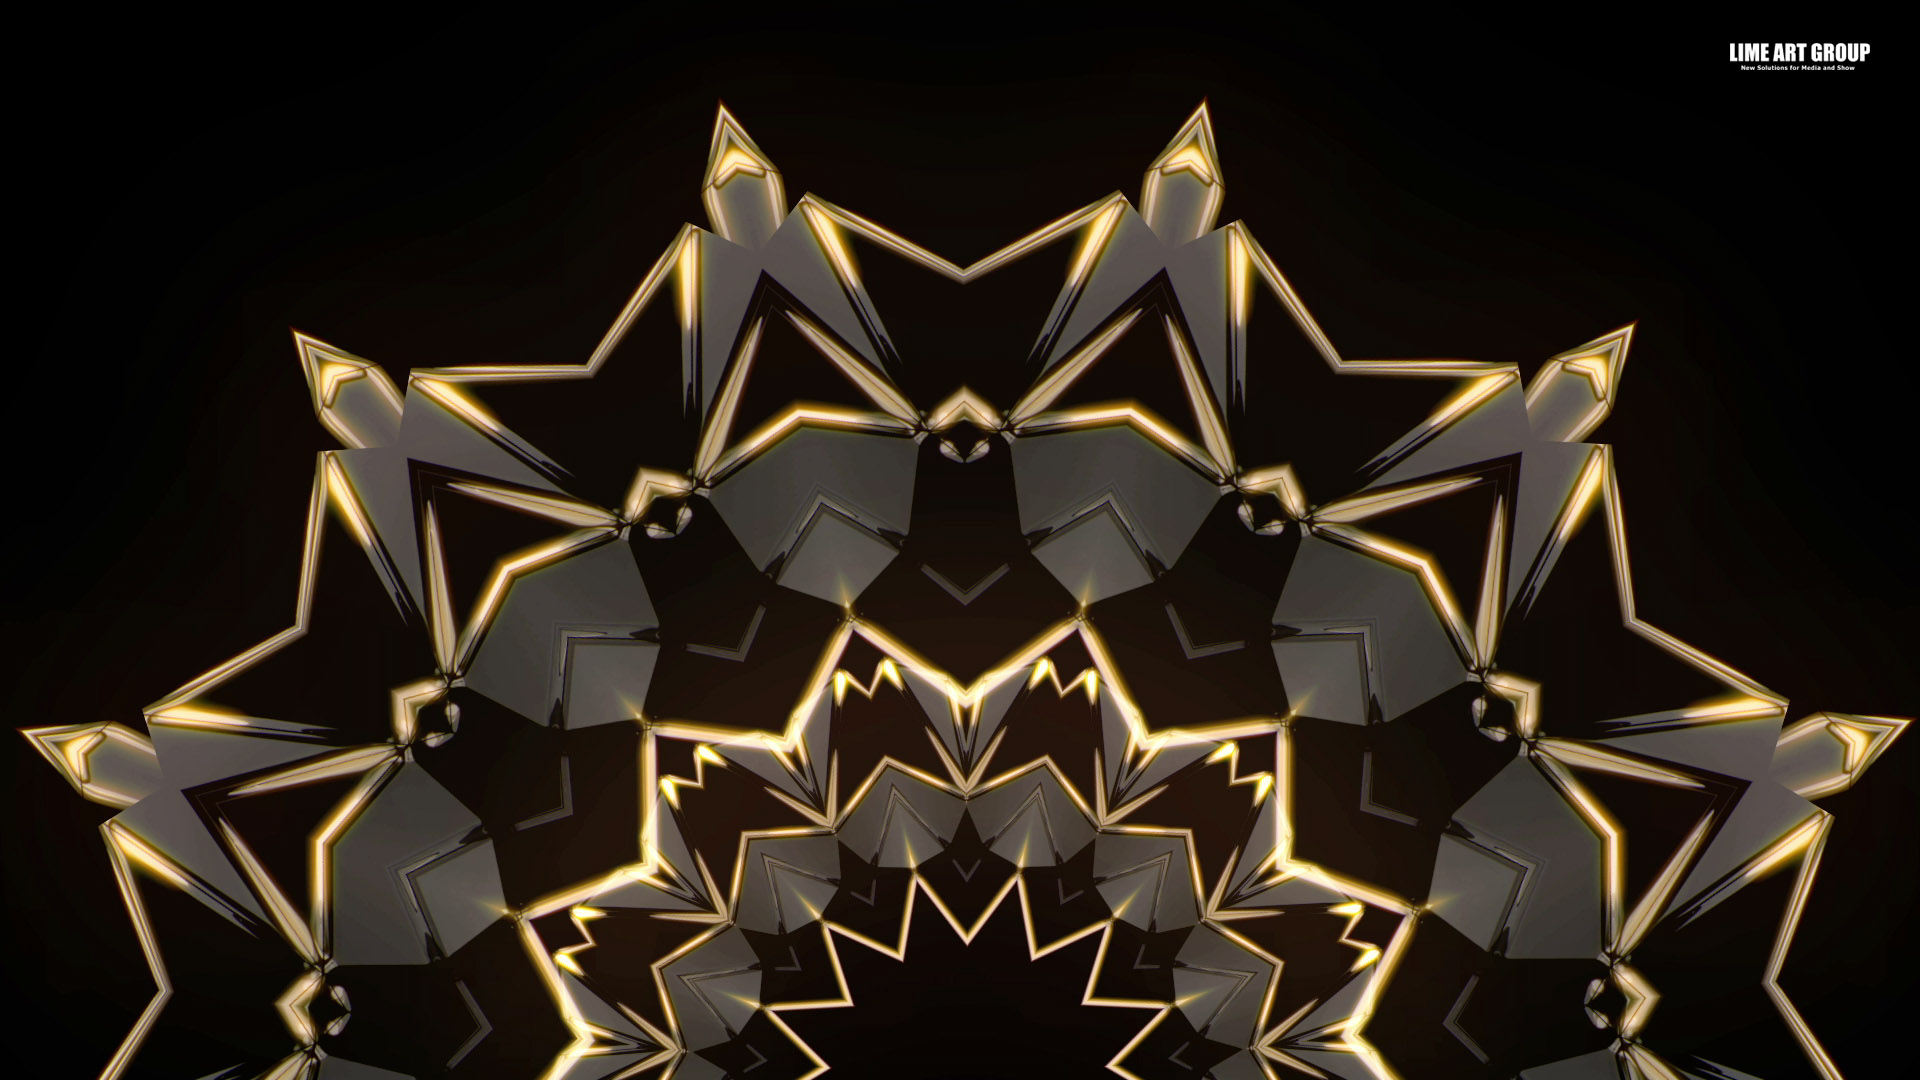 Wallpapers Goldstein Vj Loops  (2)